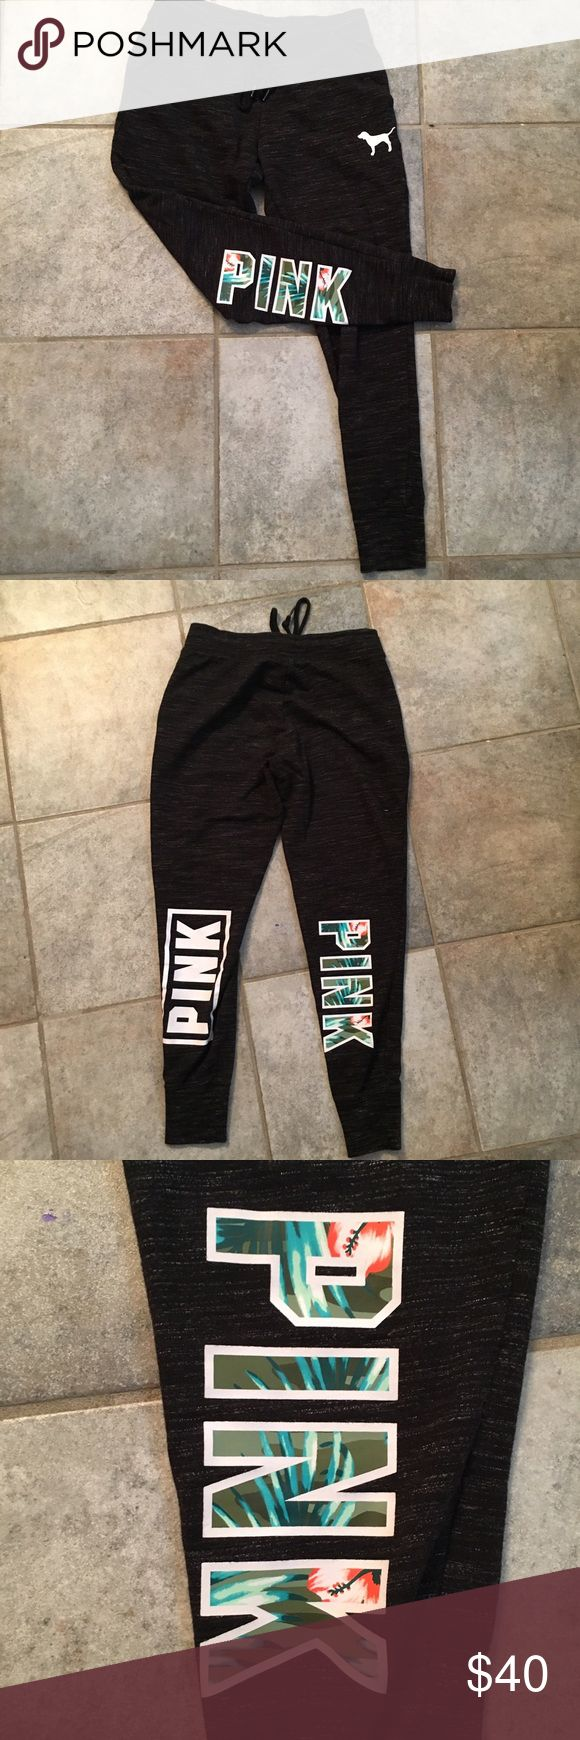 """VS Pink Tropical Joggers Marl Gray VS Pink joggers with """"pink"""" on the back right leg in a tropical pattern  Worn about 4 or 5 times, still in perfect condition with no flaws.   Size small PINK Victoria's Secret Pants Track Pants & Joggers"""